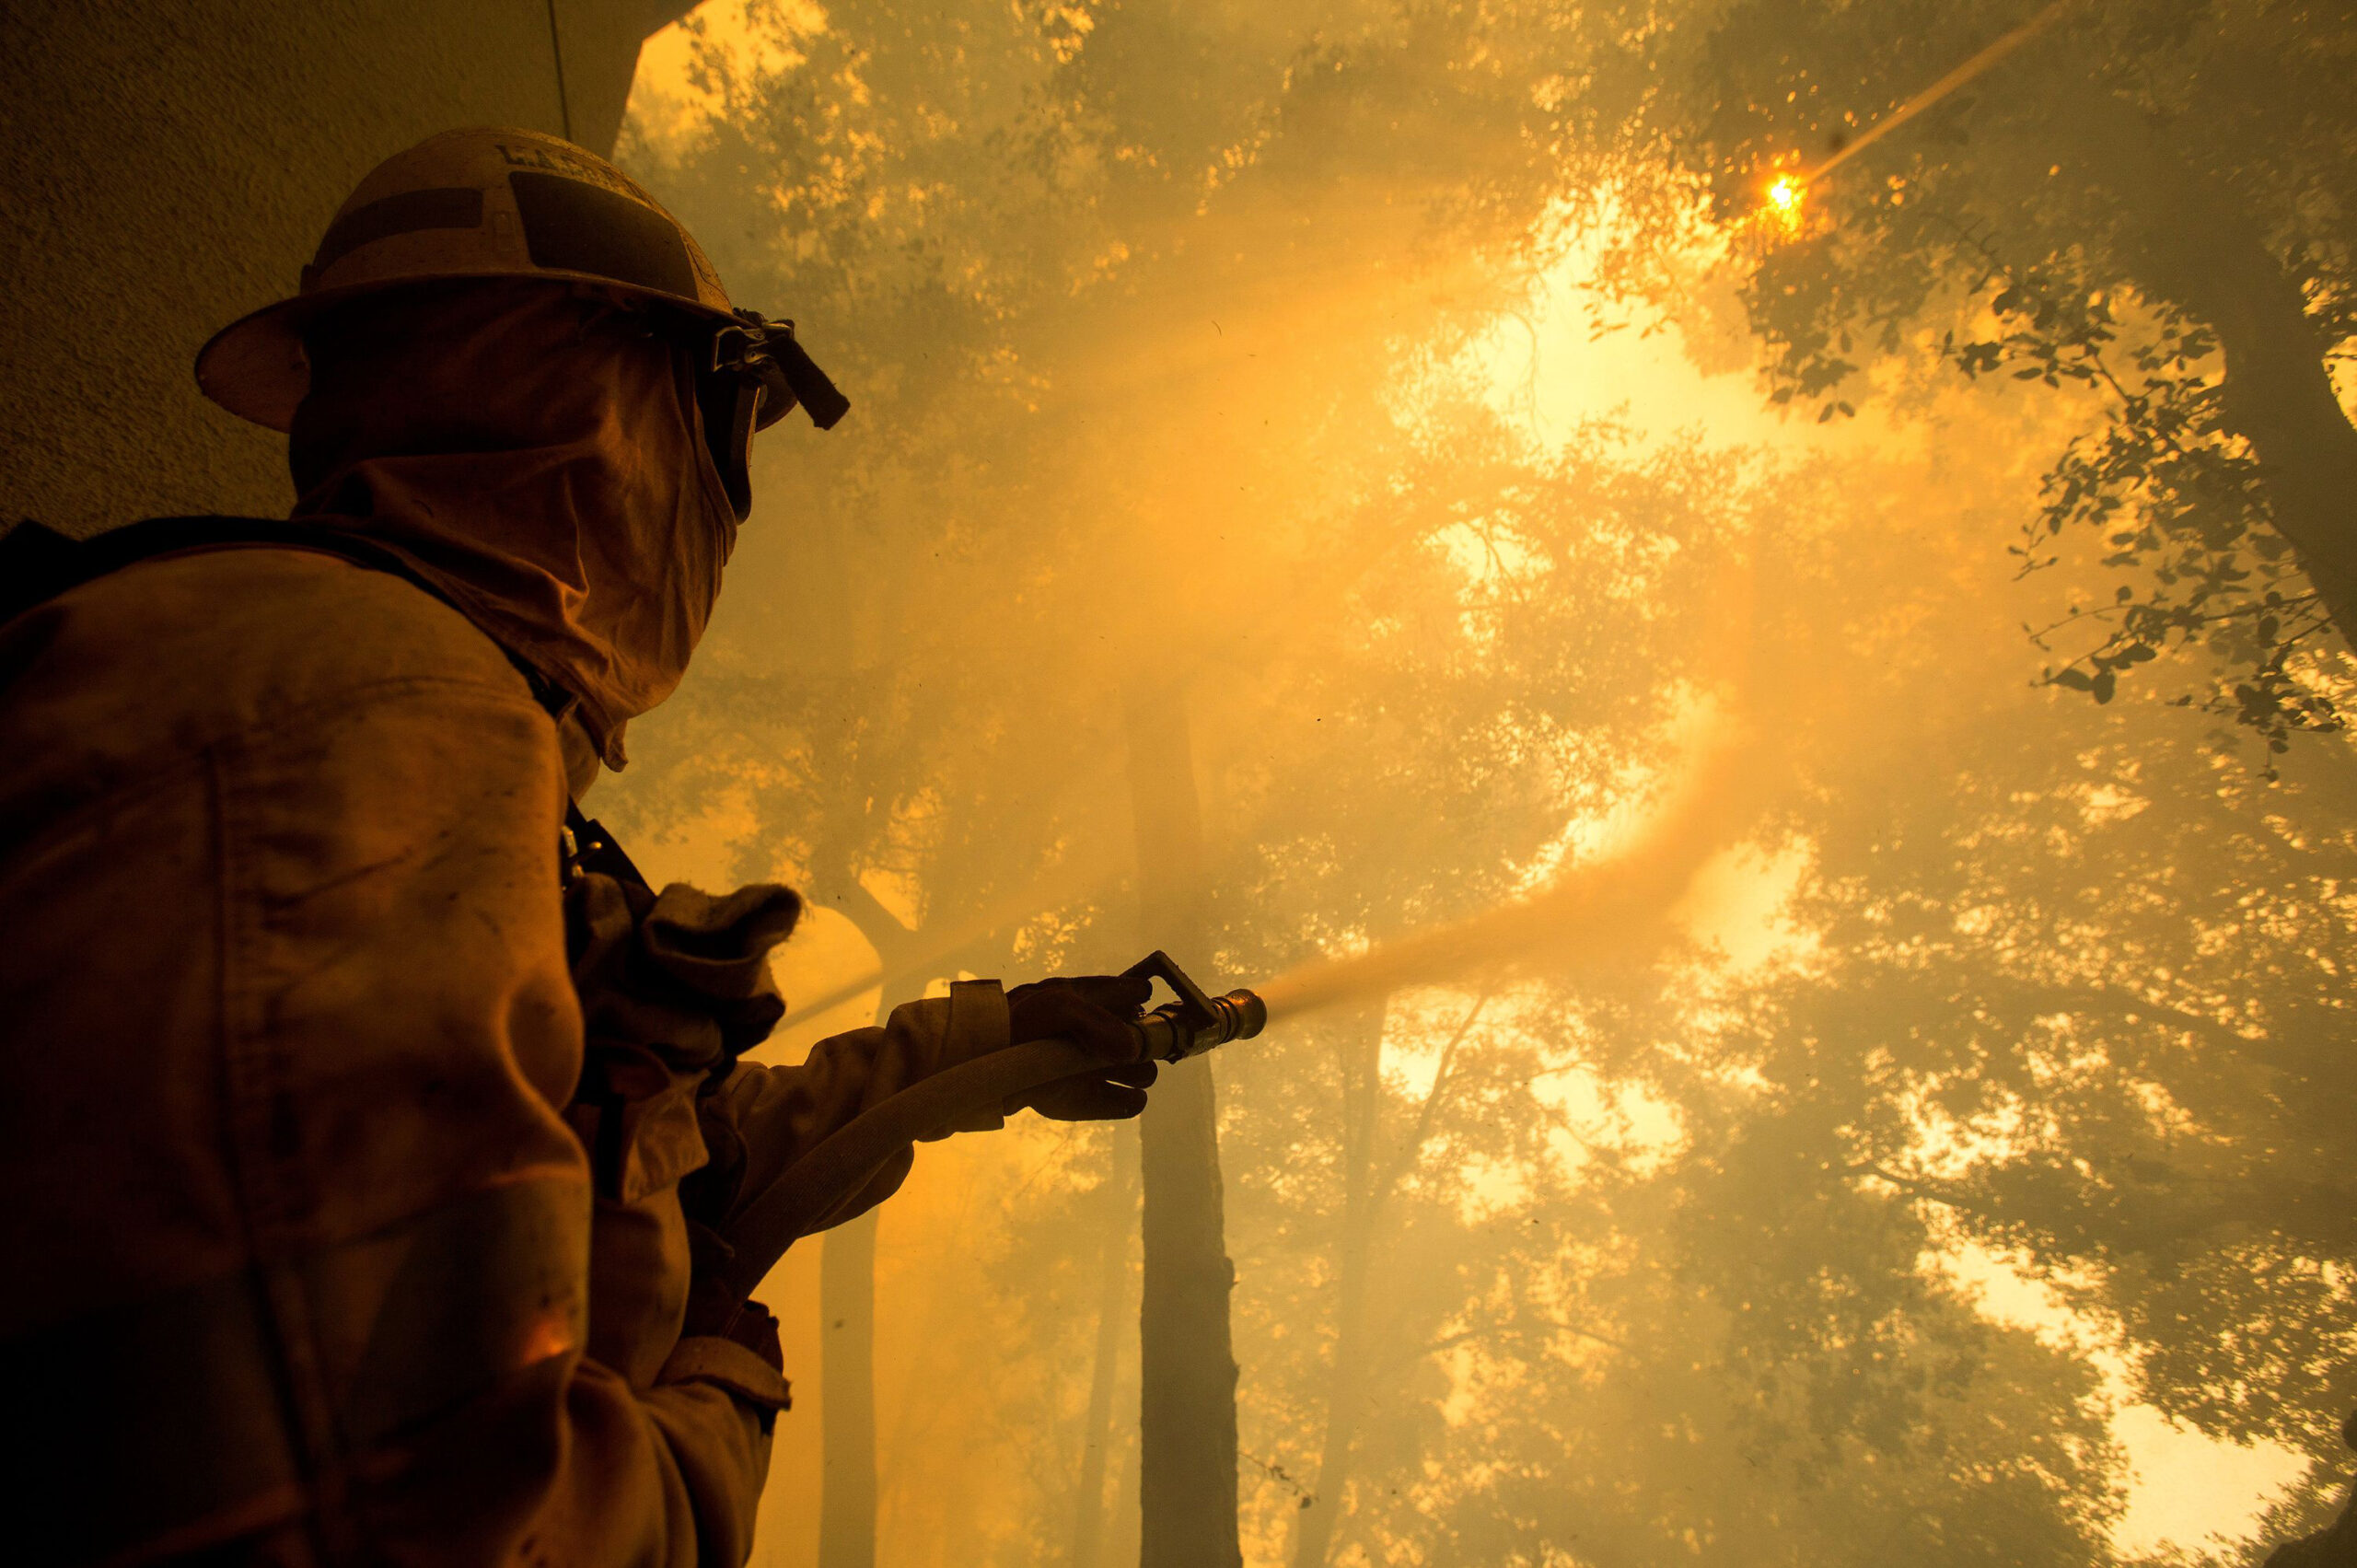 A firefighter battles a wildfire near a structure while defending the Mount Wilson observatory during the Bobcat Fire in Los Angeles on Thursday, Sept. 17, 2020